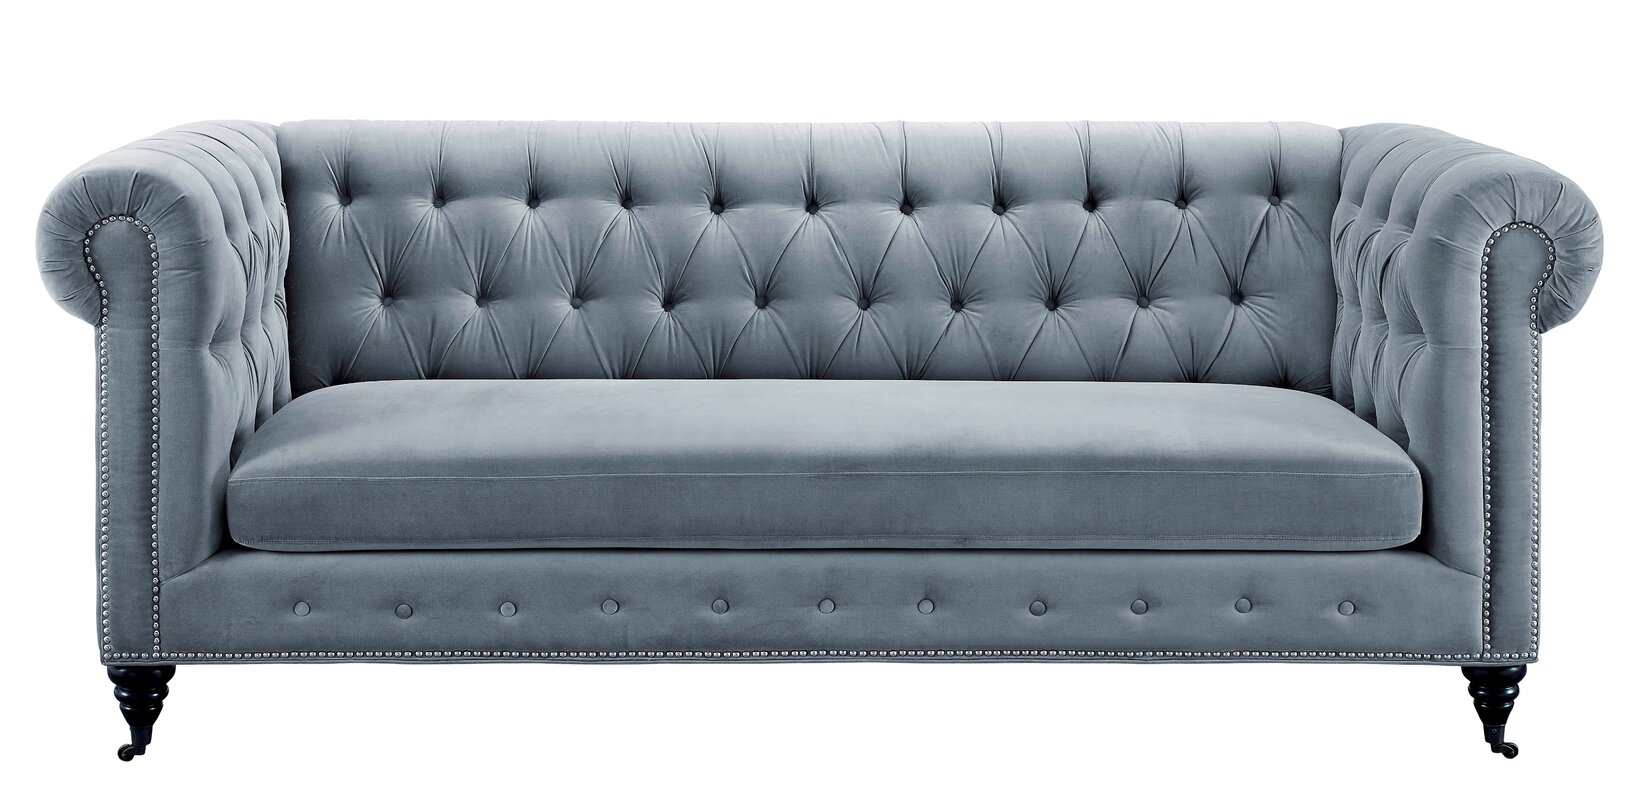 Gertrudes Chesterfield Sofa